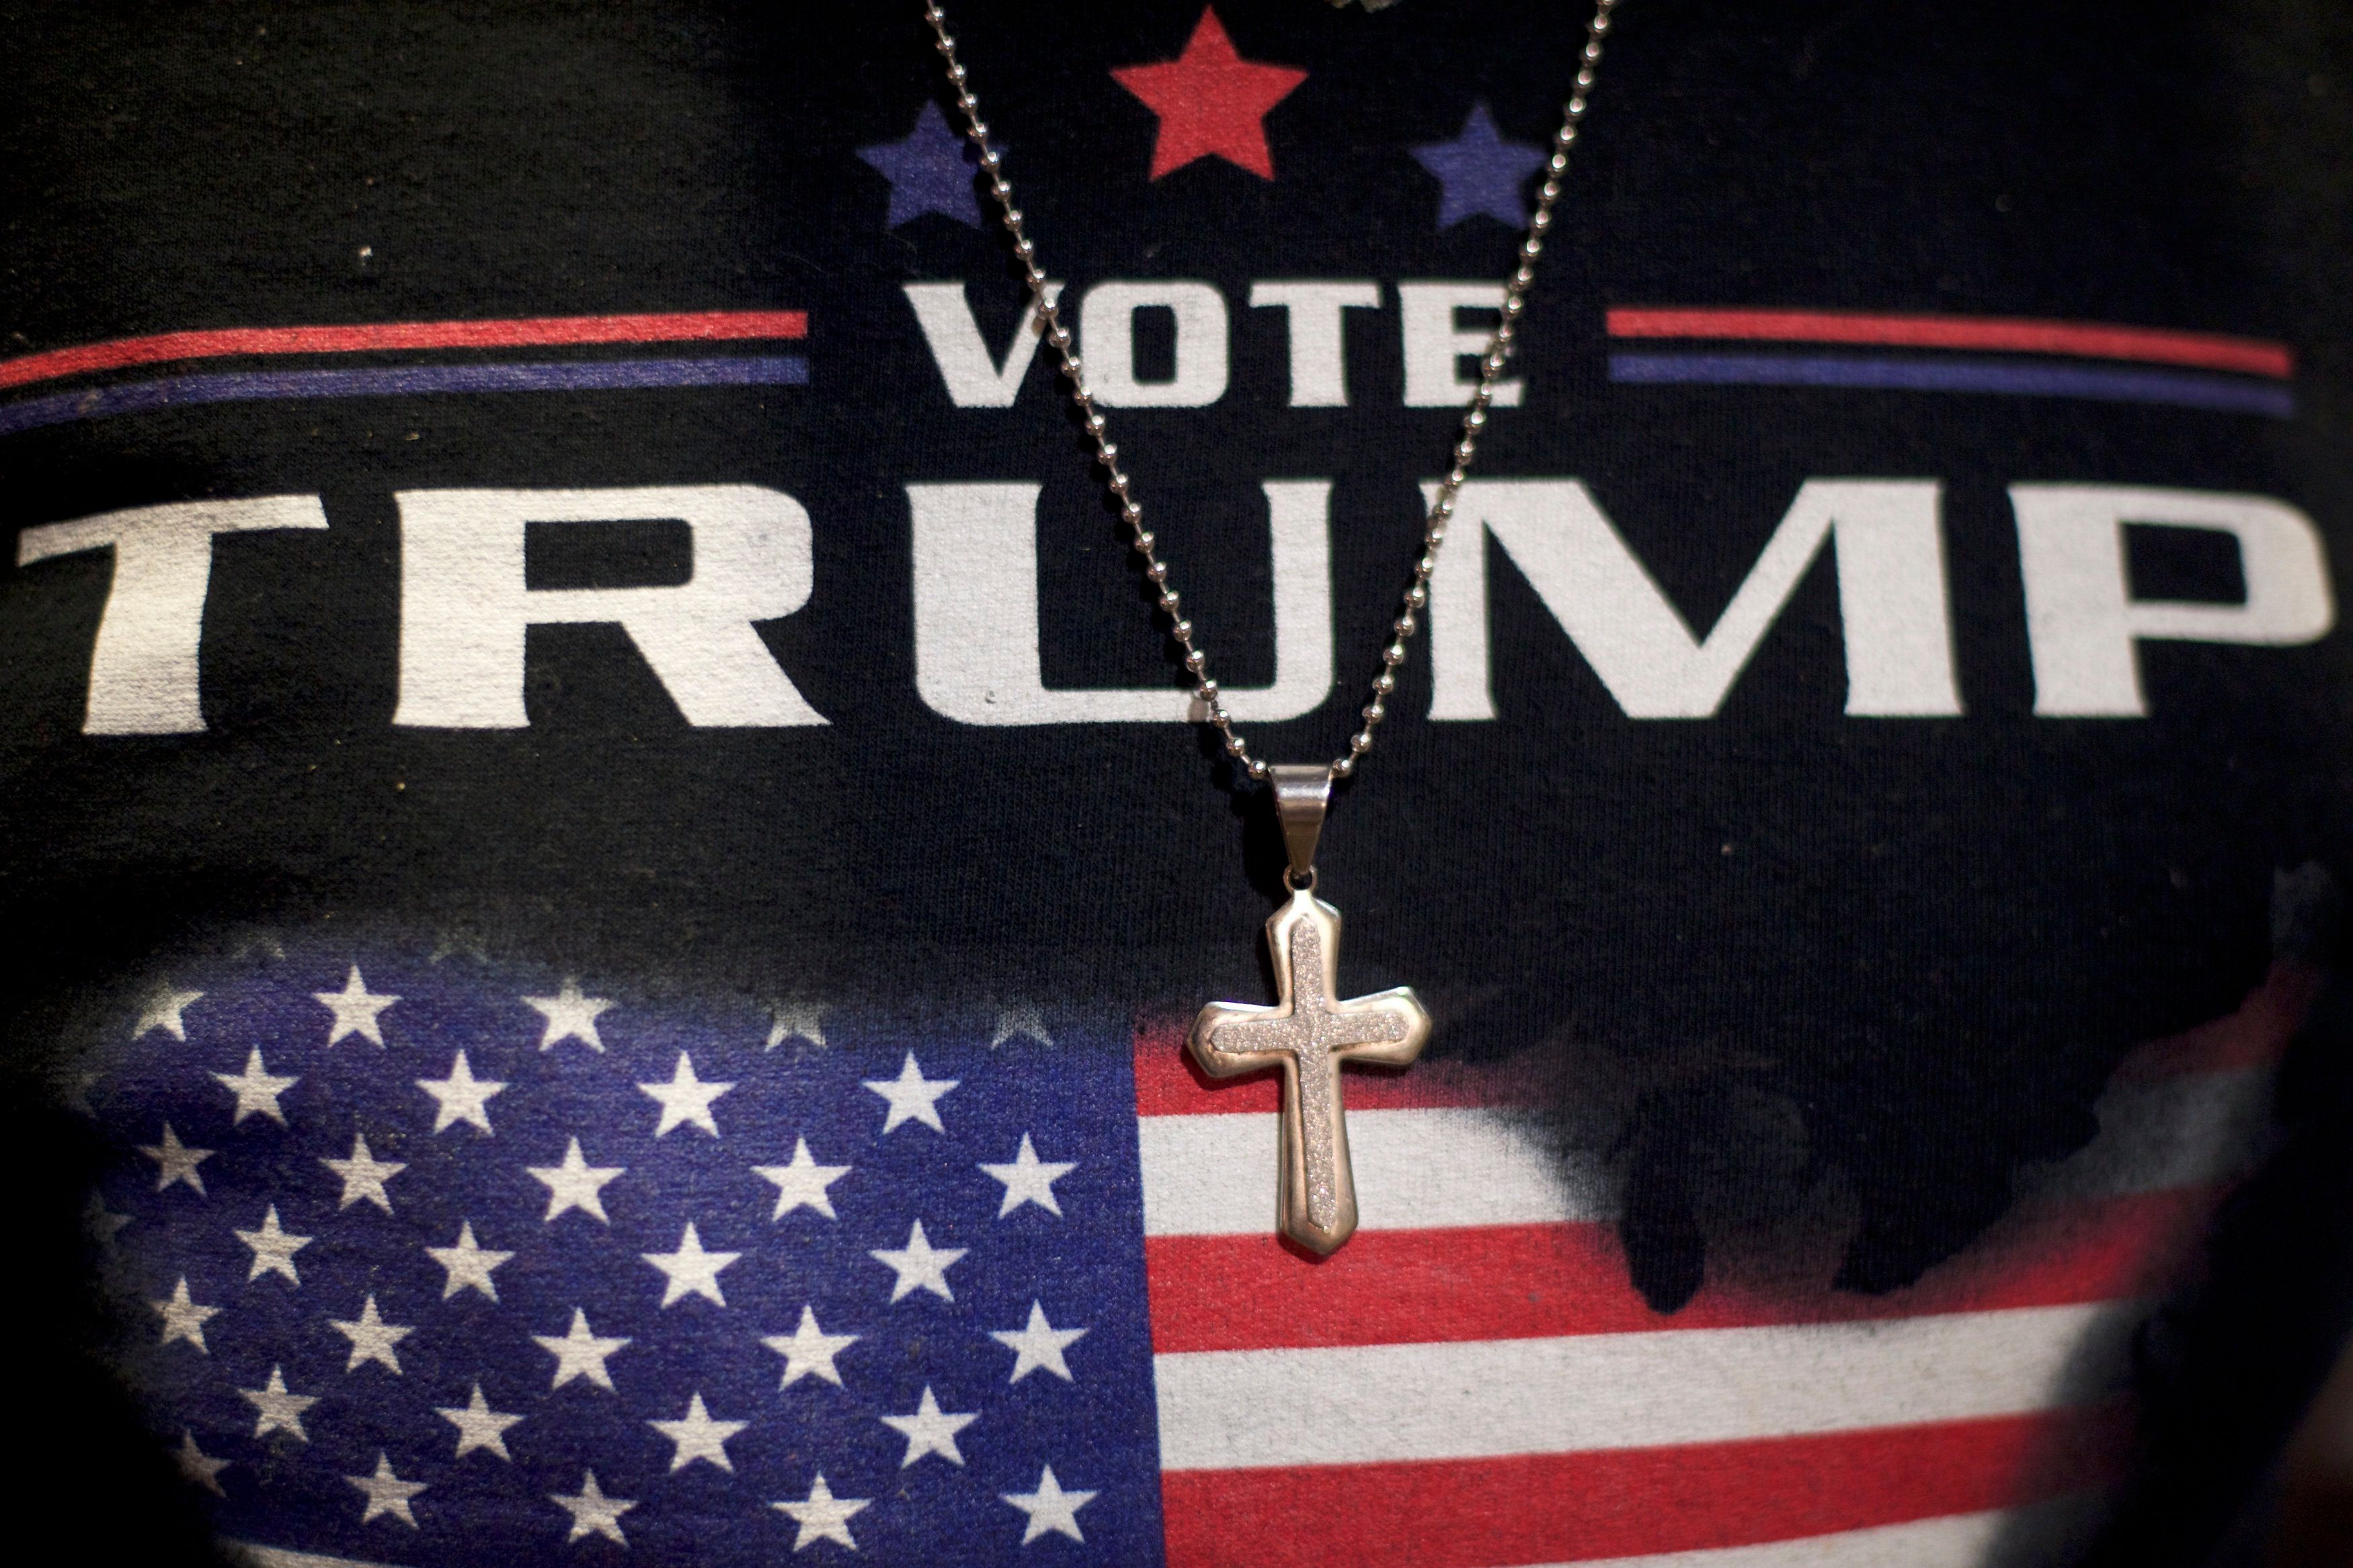 Minister E.J. Christian, 68, wears a Donald Trump shirt with a cross necklace before an Oct. 22,2016, campaign event in